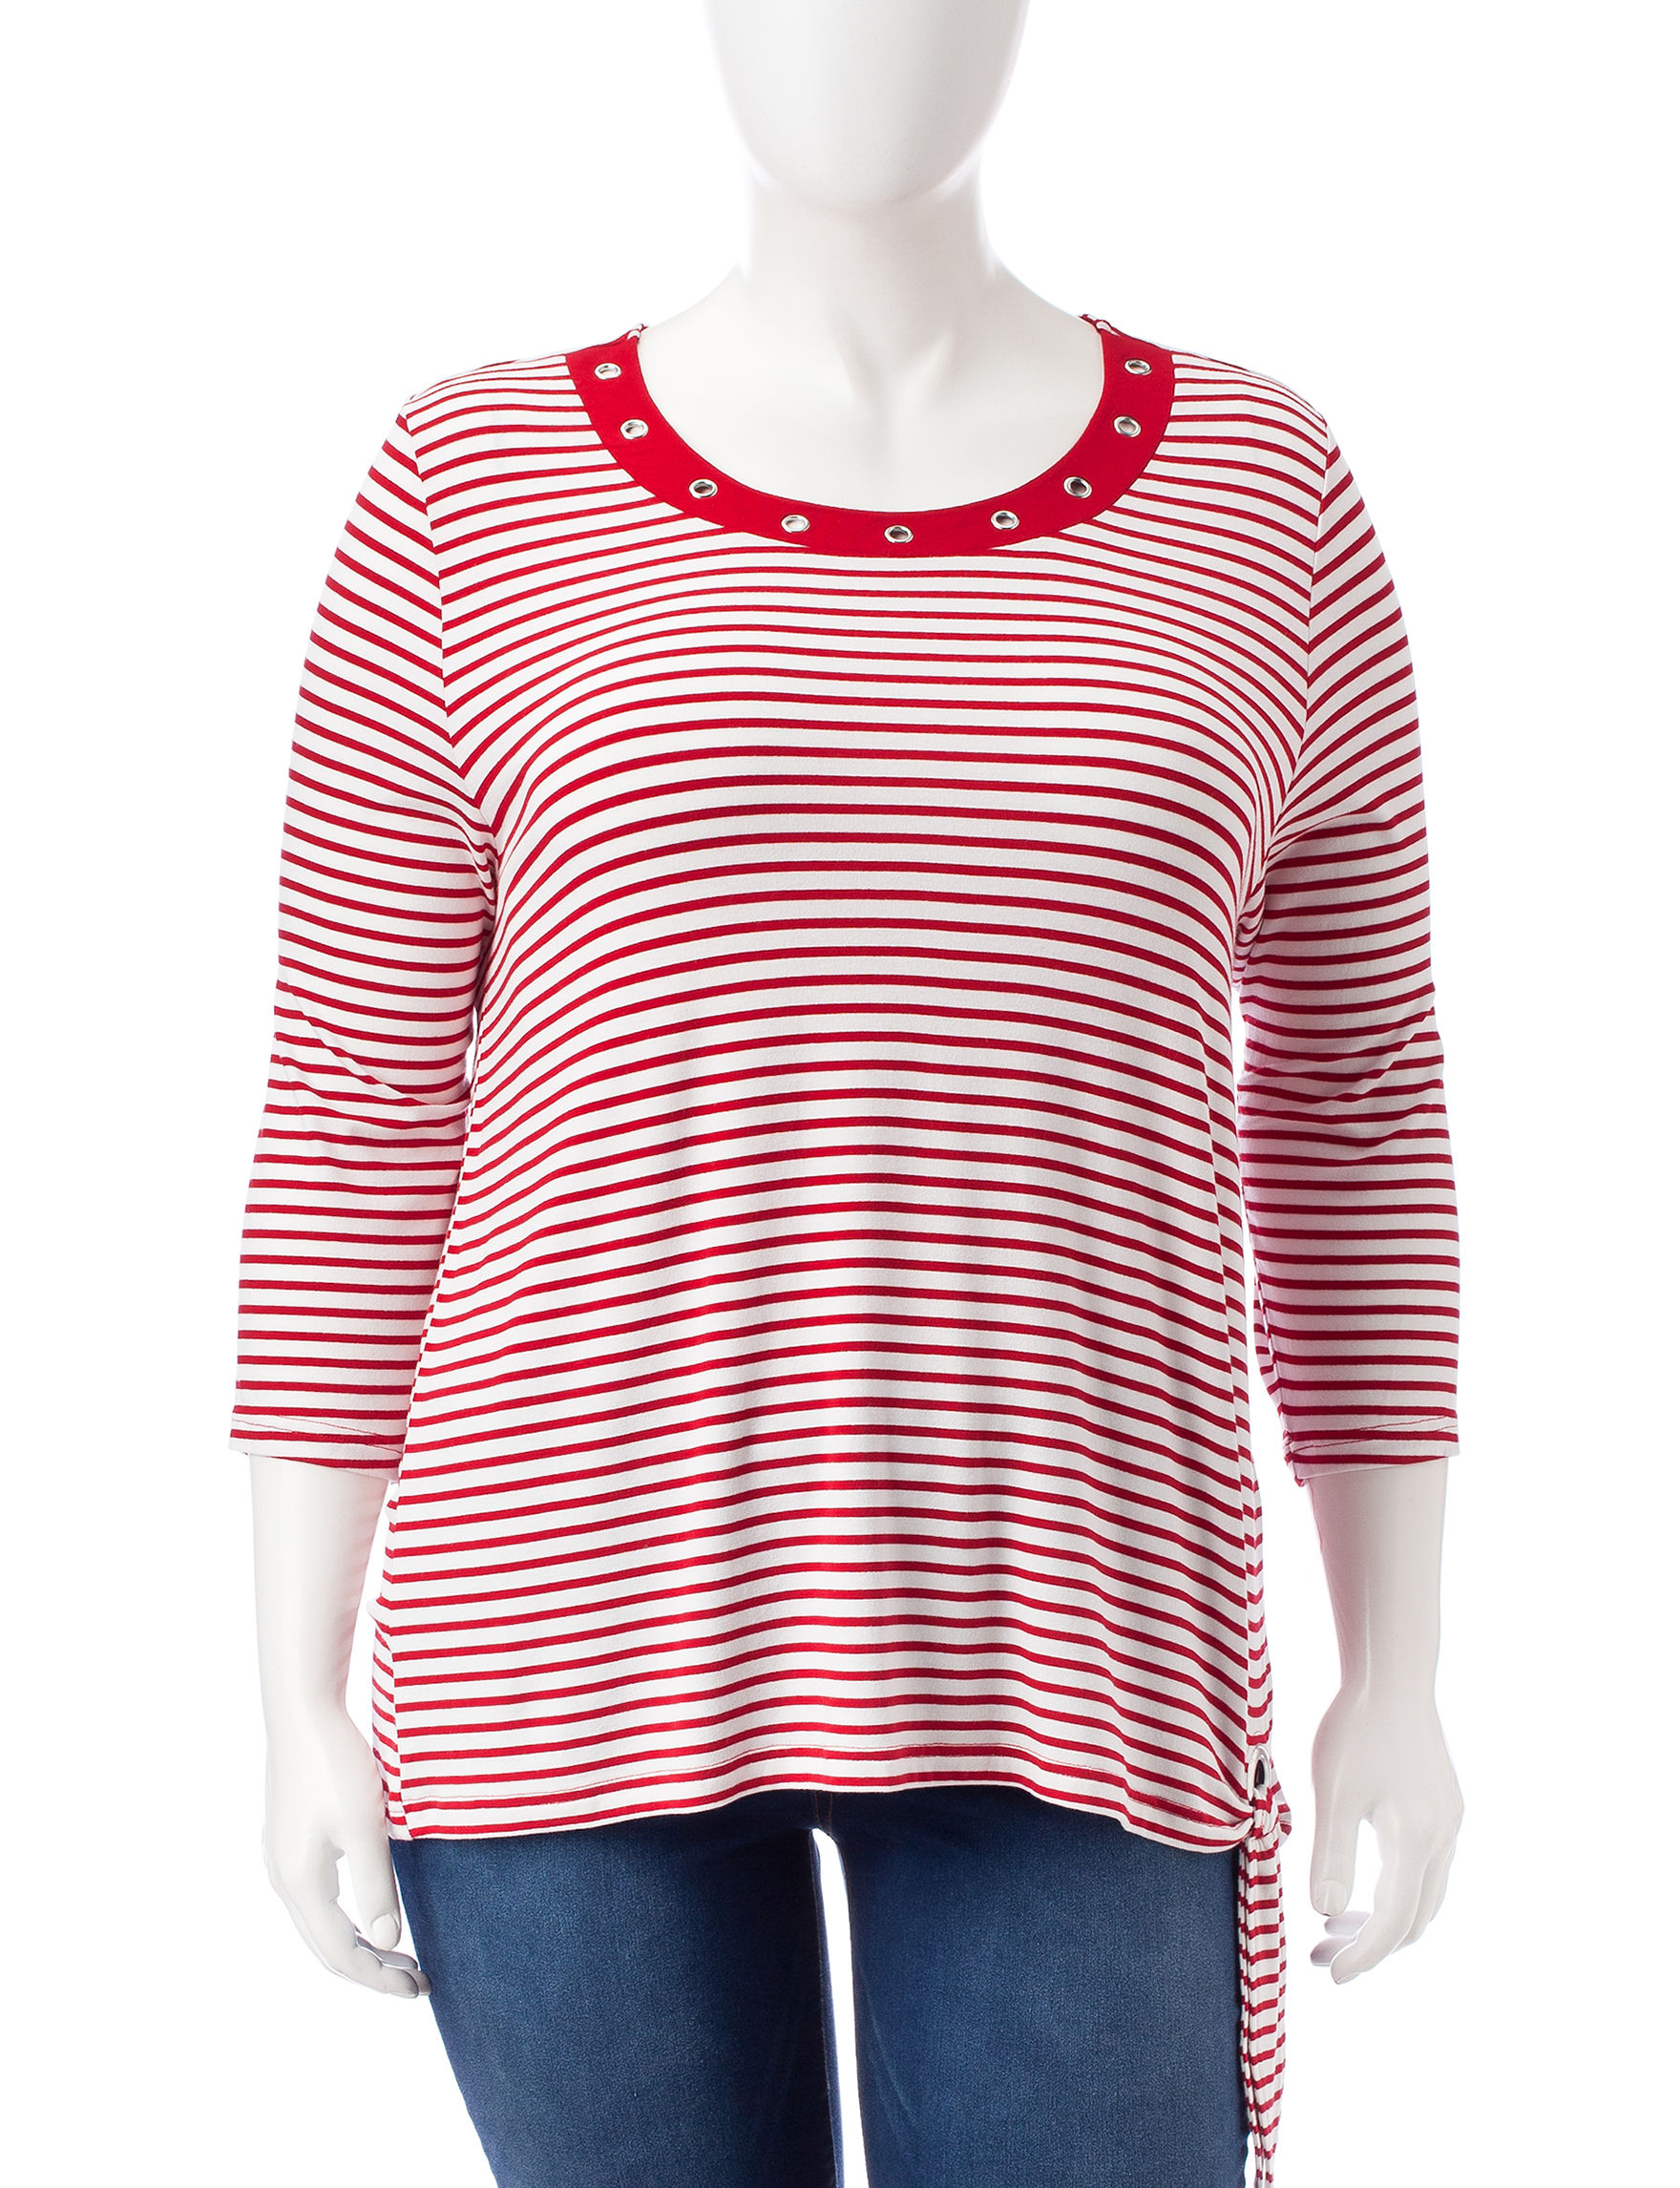 Cathy Daniels Red / White Shirts & Blouses